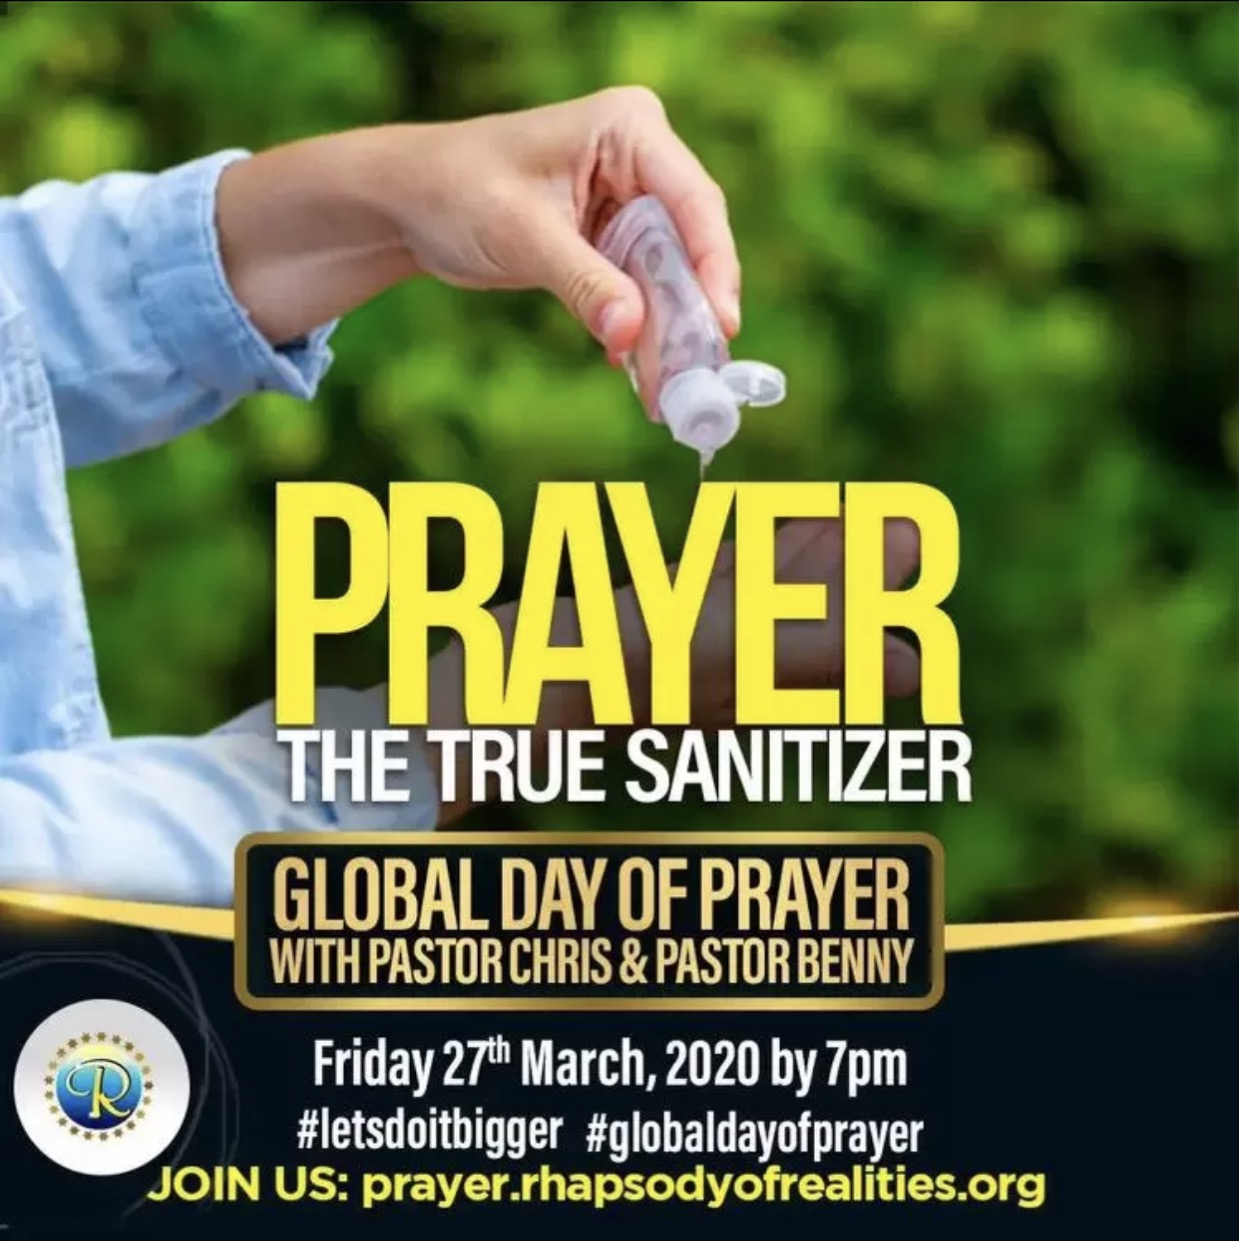 Prayer is the true sanitiser